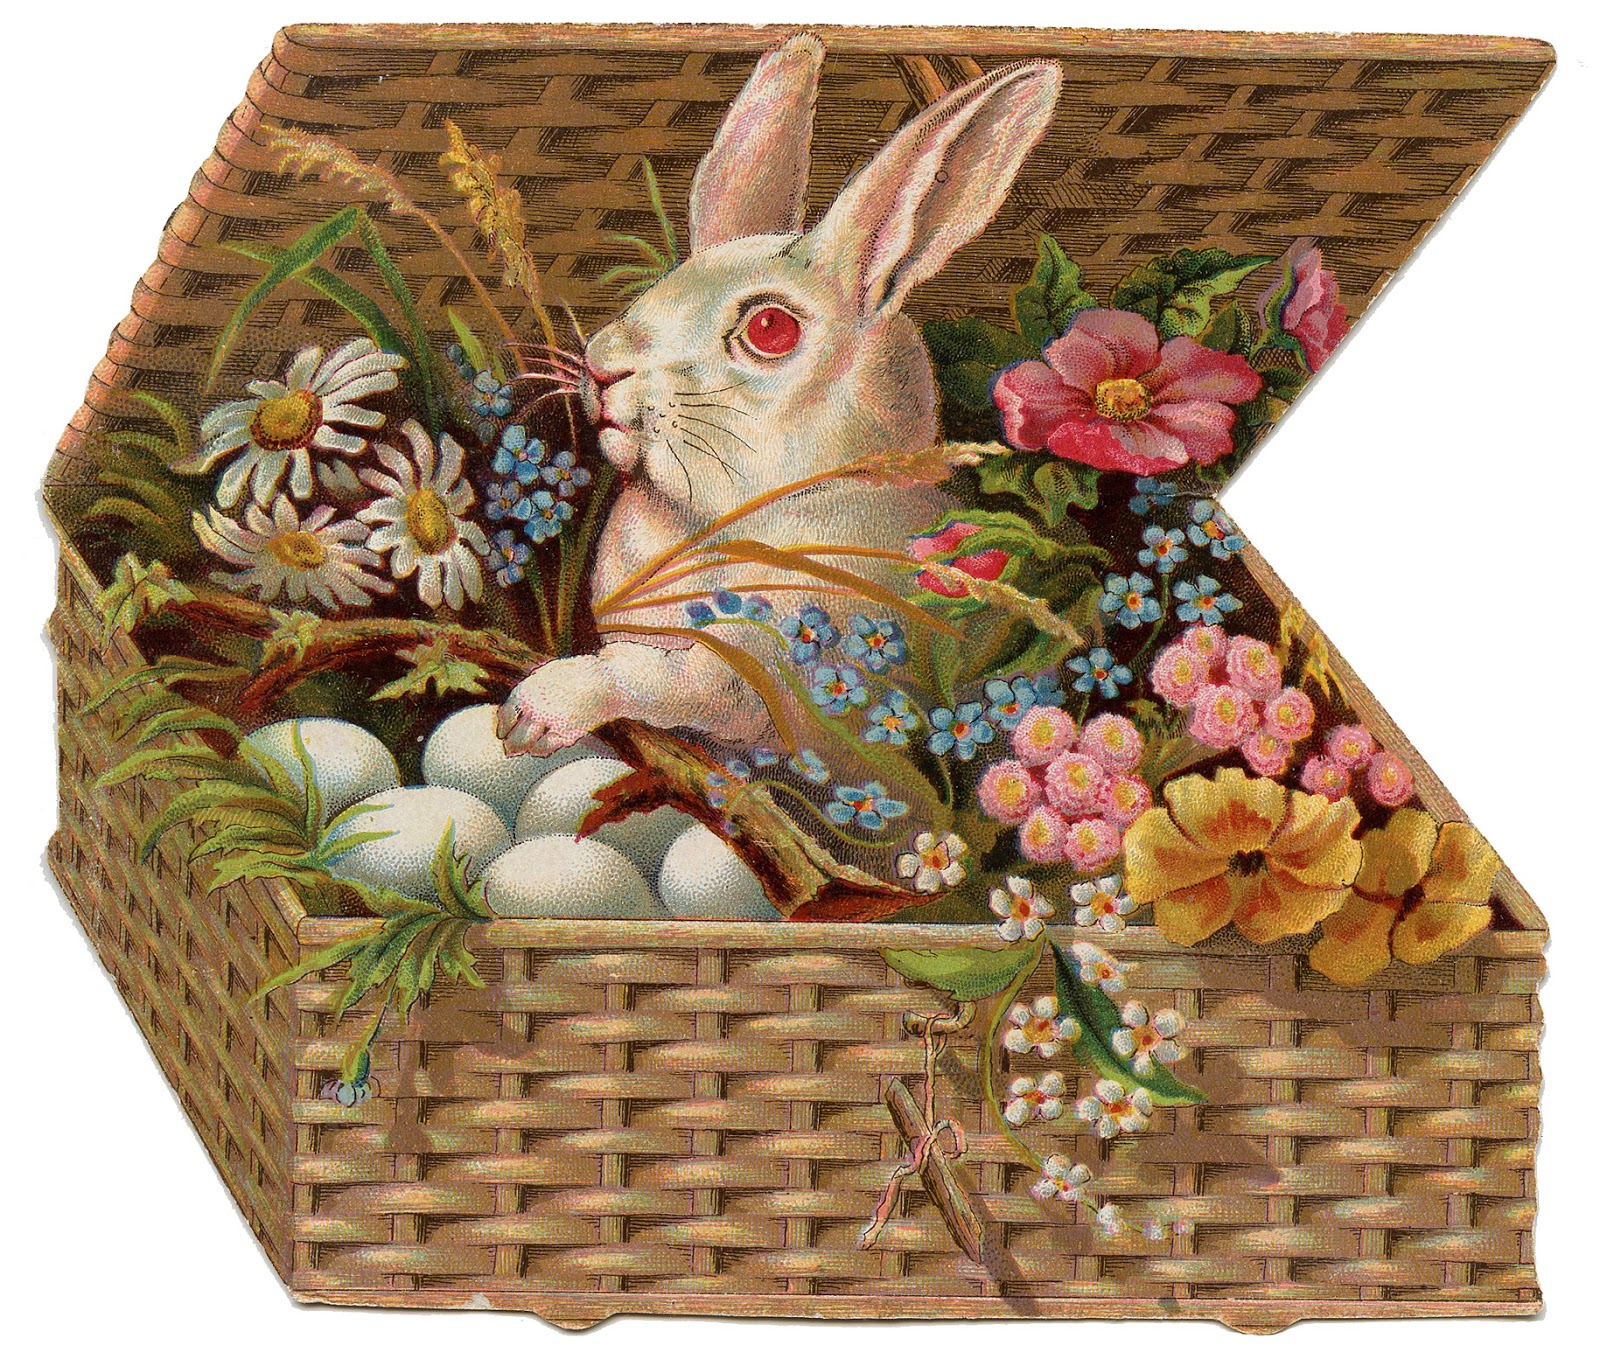 Vintage Easter Clip Art of Bunny in Basket.